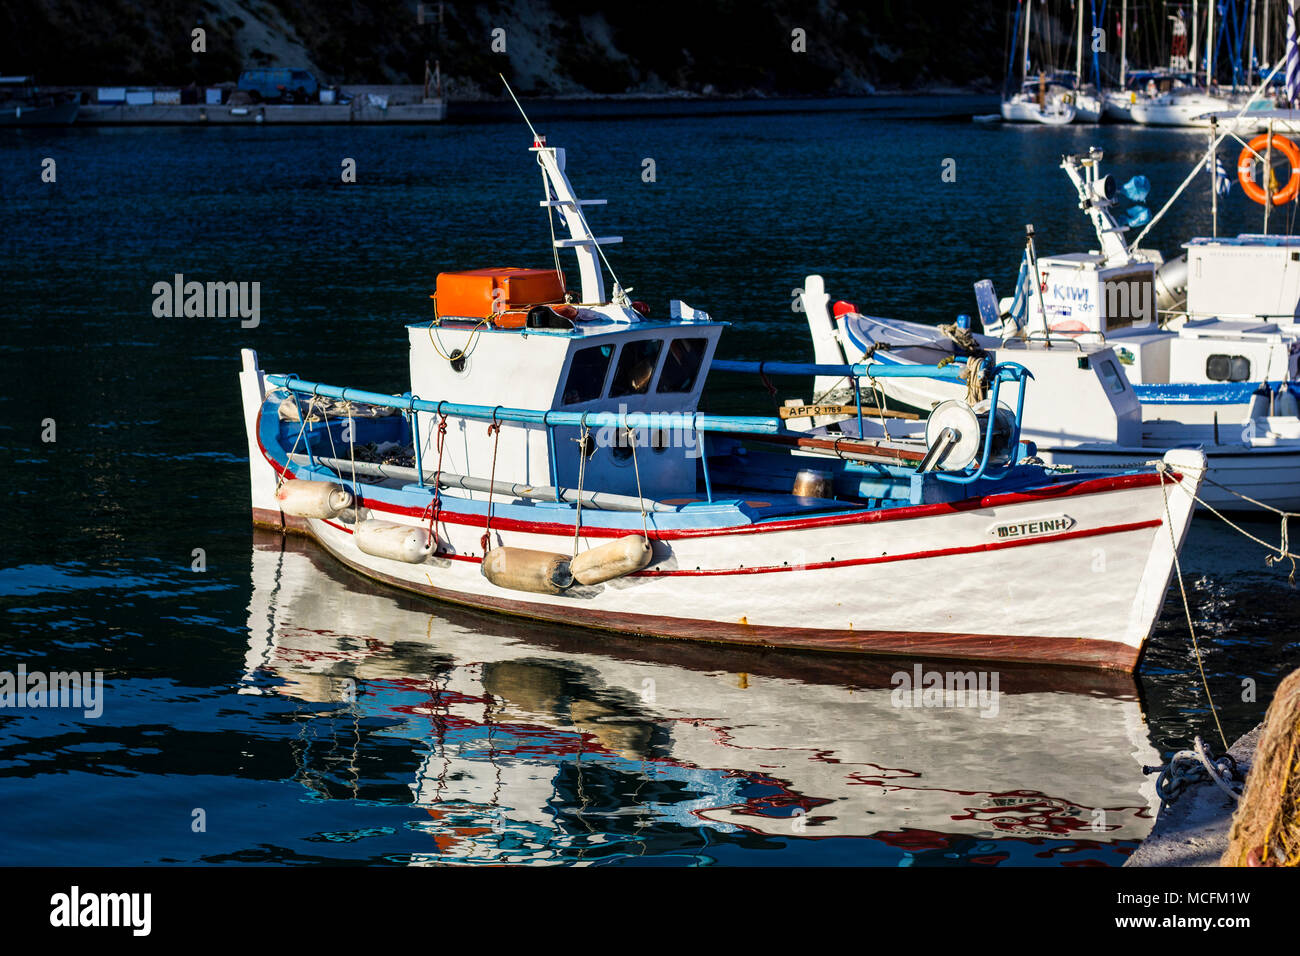 Small Fishing Boat tied up in Harbour - Stock Image